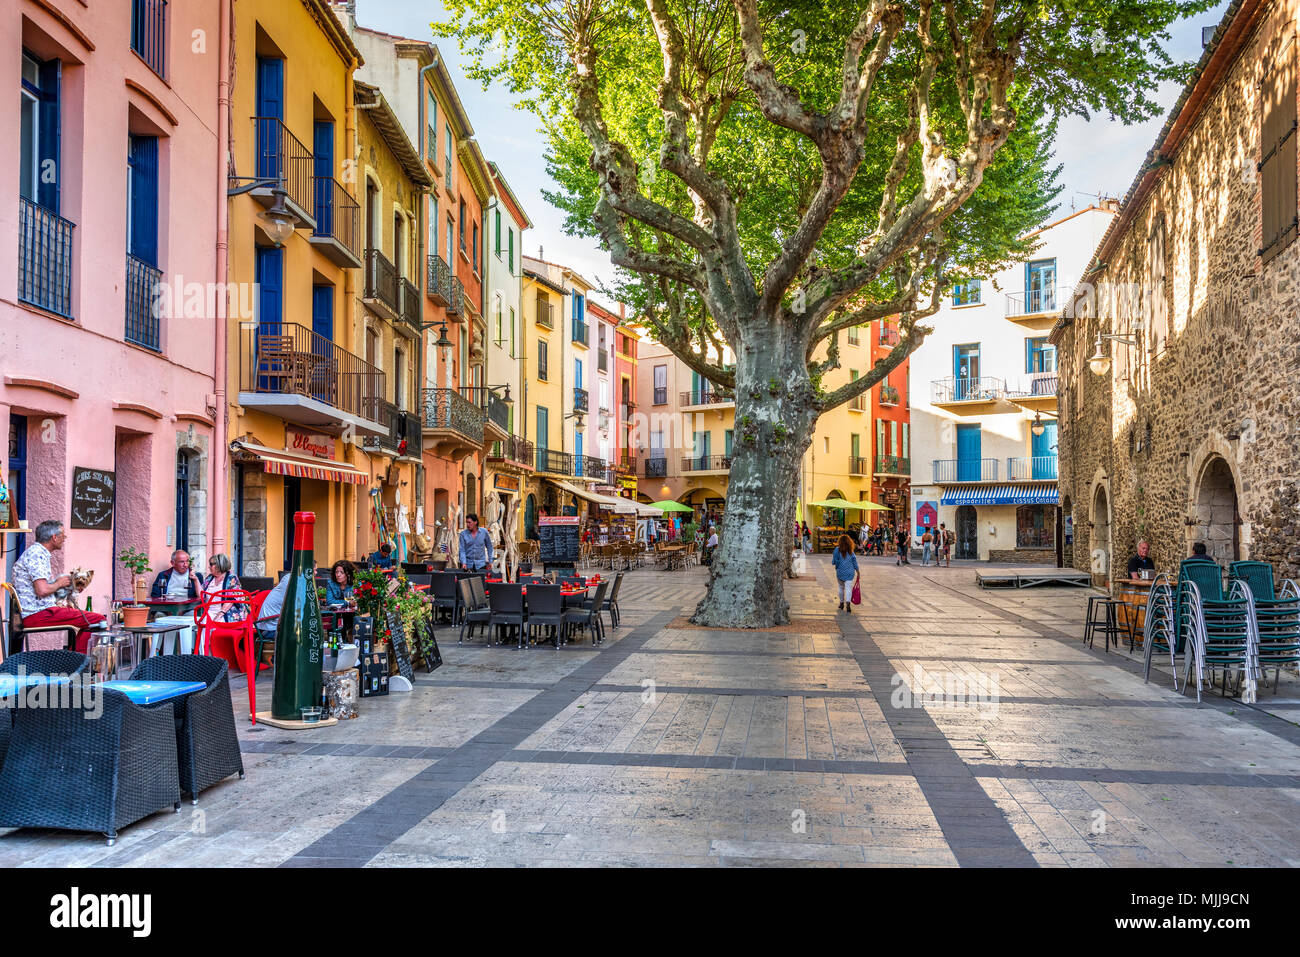 Outdoor cafe in the main town square, Collioure, Pyrenees-Orientales, France - Stock Image